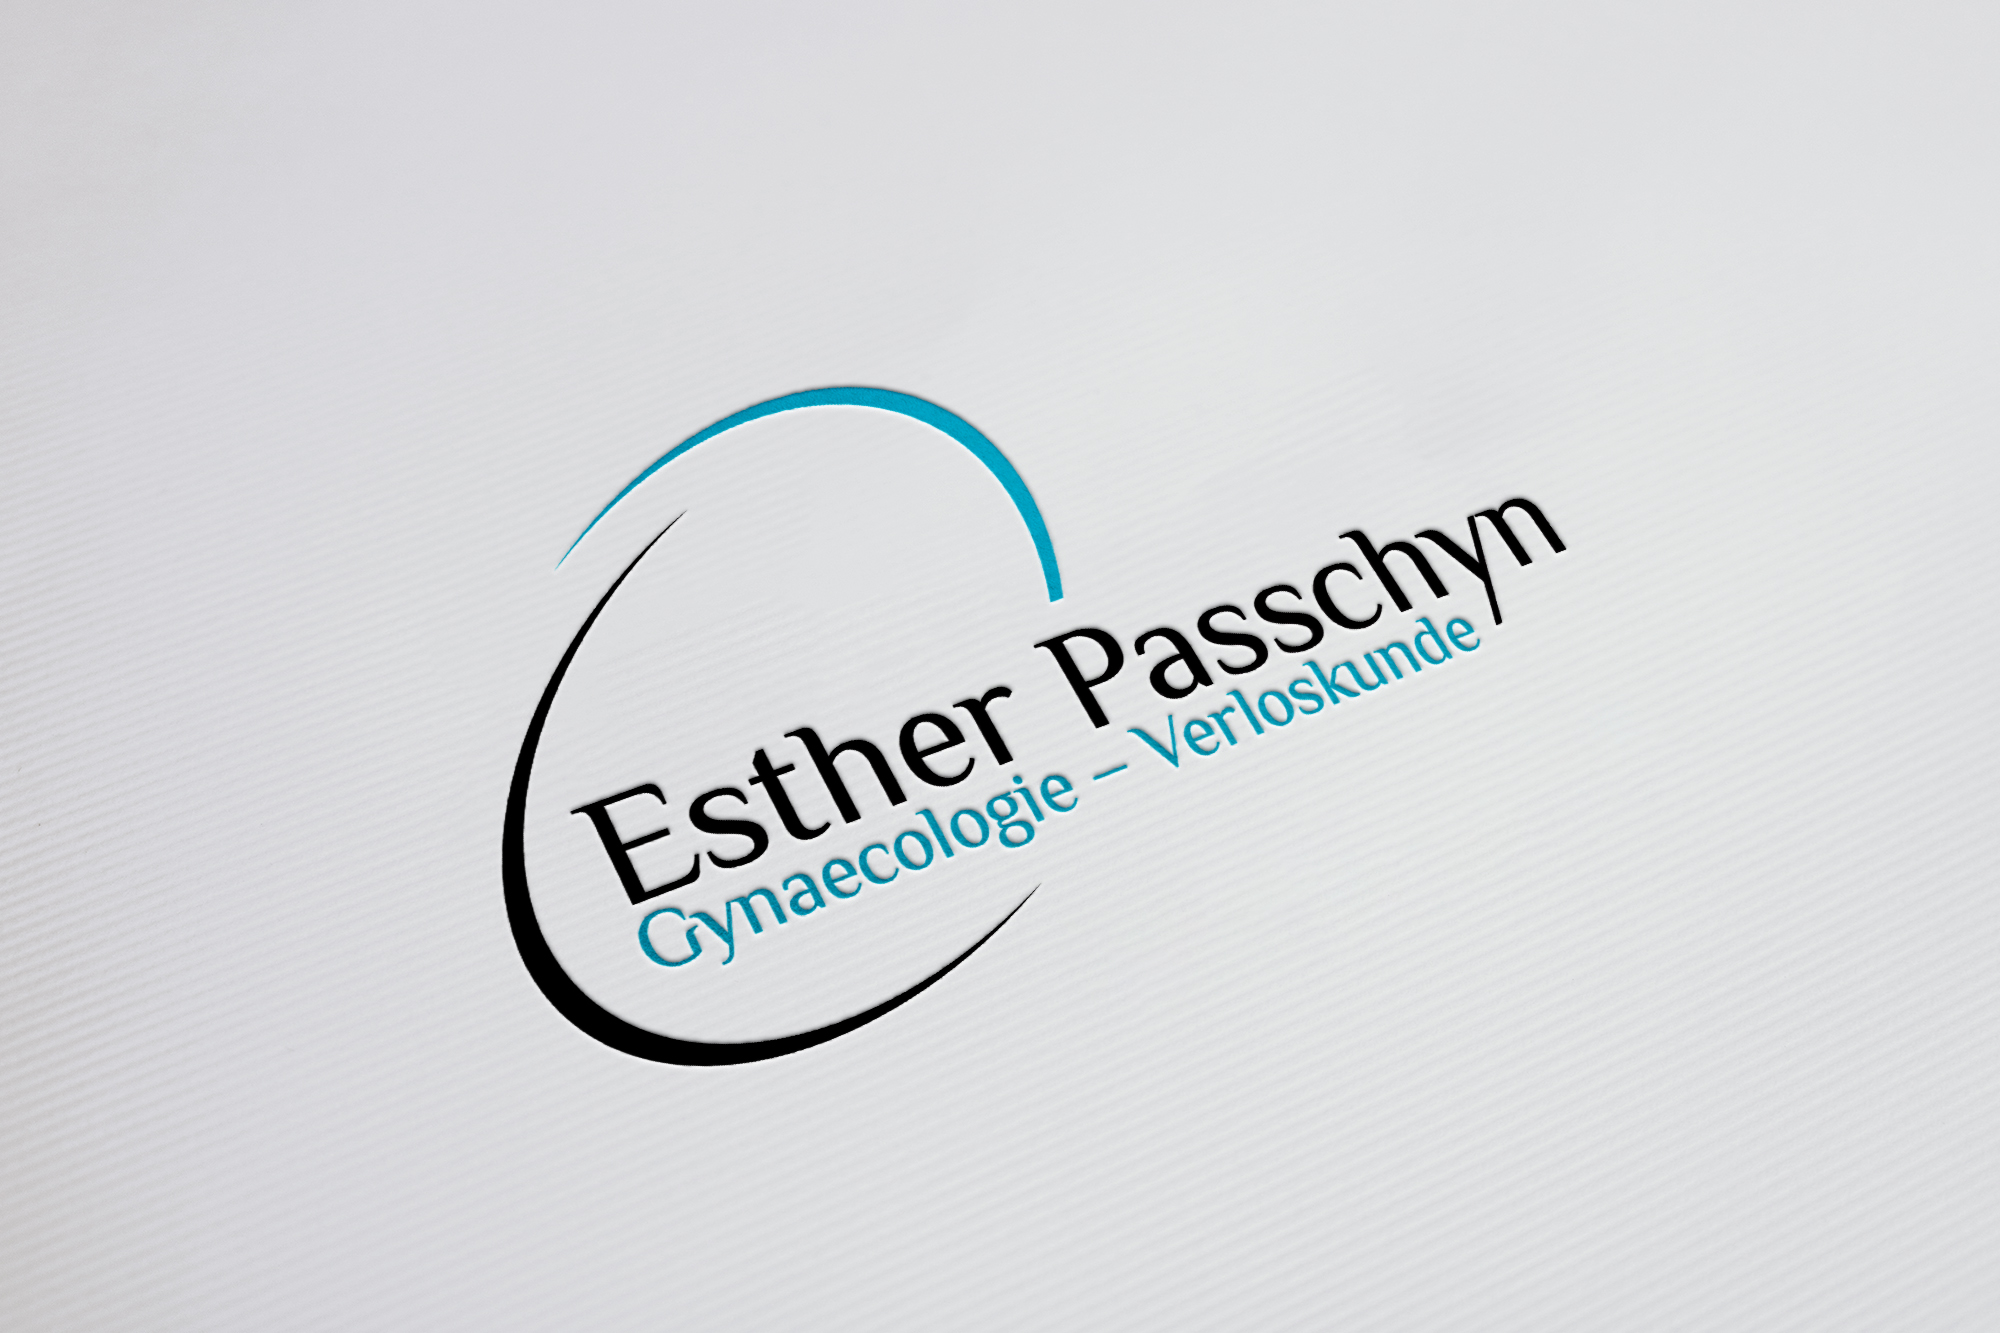 Gynaecologe Esther Passchyn